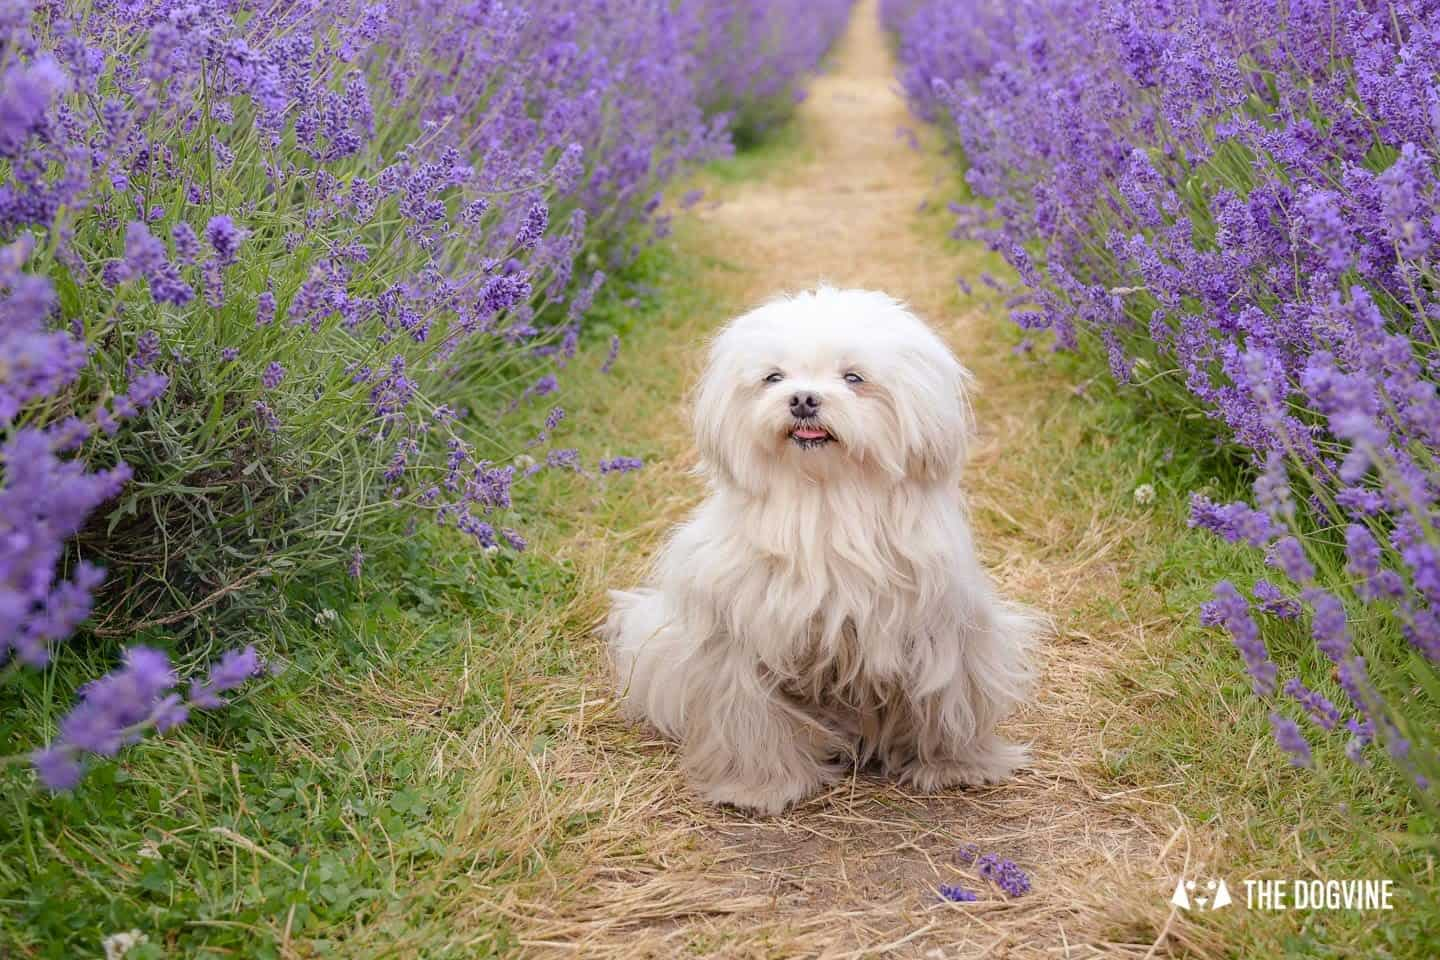 Lilliput the Maltese enjoying the dog-friendly Mayfield Lavender Farm